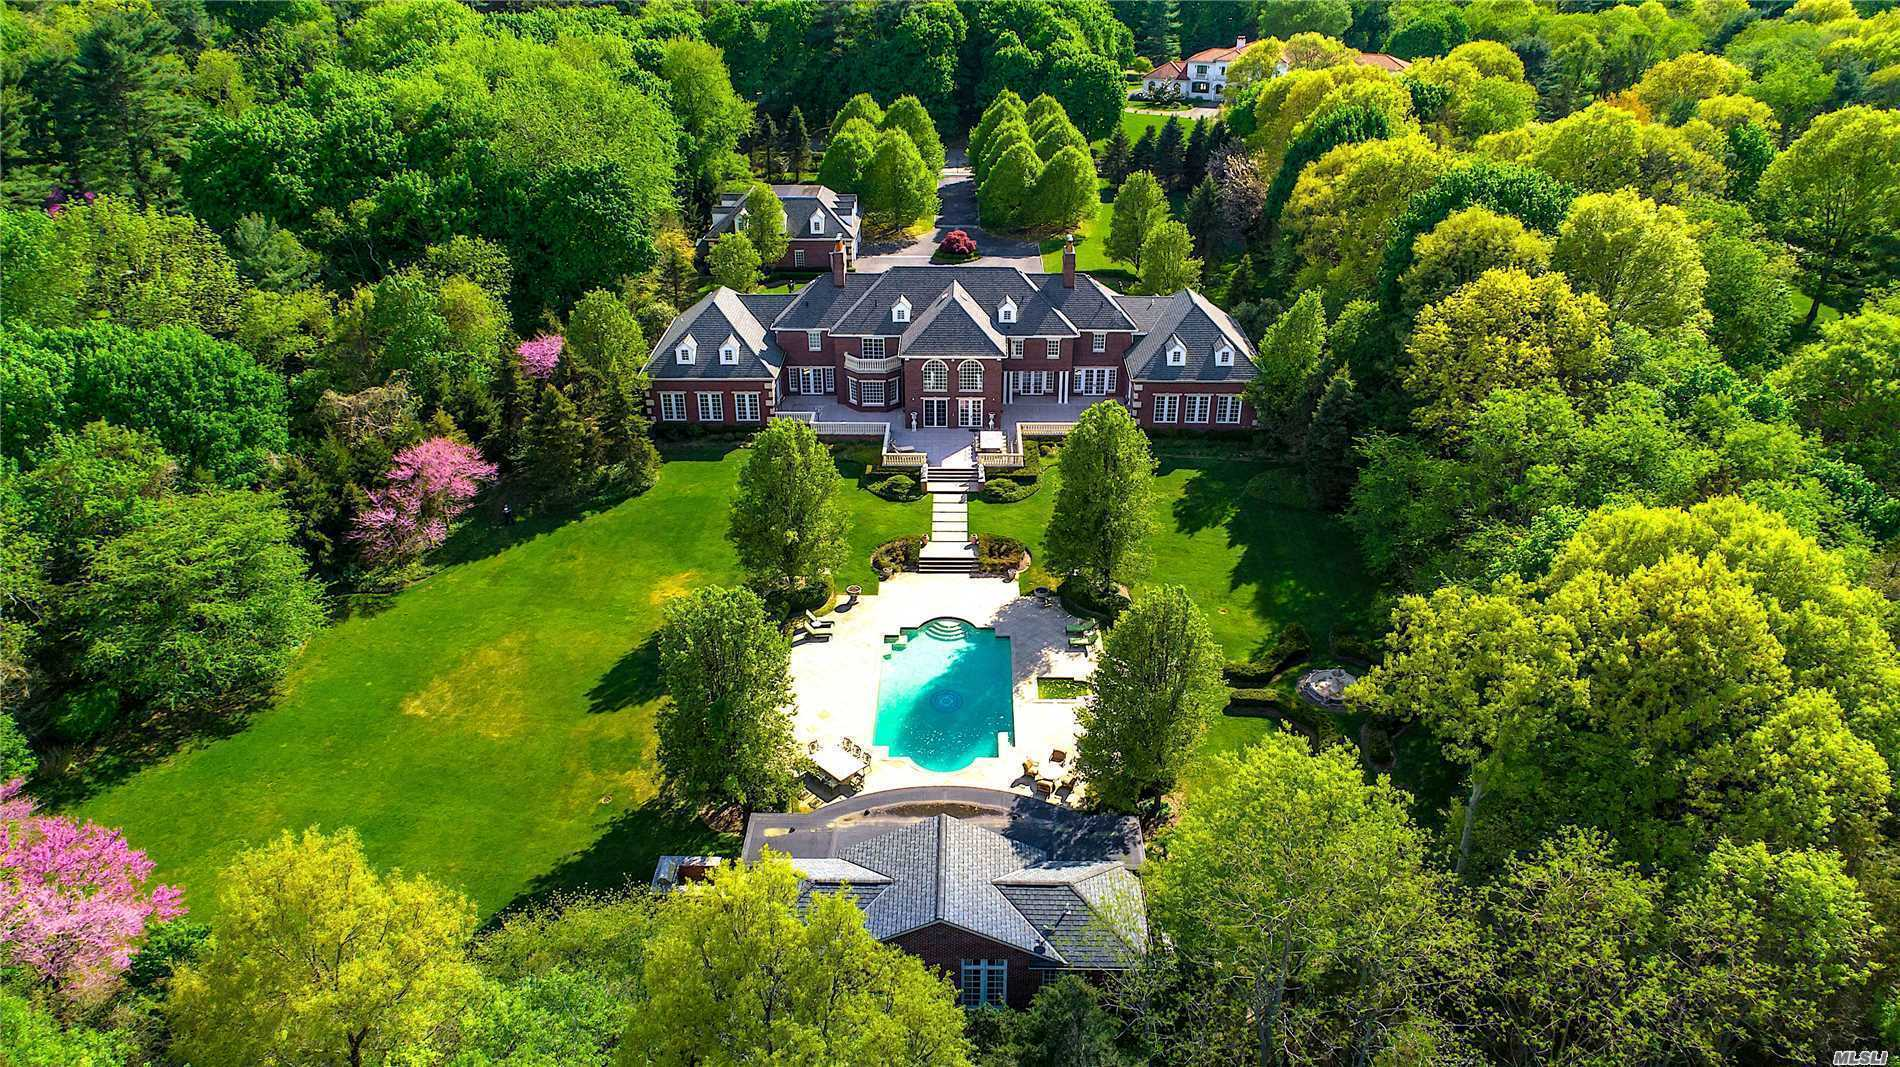 Unparalleled Privacy Abounds In This 8,800 Sq. Ft Classical Brick Home In The Prestigious Village Of Upper Brookville. Traditional Floor Plan Delivers 7 Bedrooms, 7.5 Baths, Double Bridal Staircase, 5 Fireplaces, Ig Gunite Pool With A Cabana. 9 Car Radiant Heated Garage. Ideally Set On Over 5 Acres Of  Beautiful Landscaped Property With Specimen Plantings And Trees. Reminiscent Of Formal English Gardens With Cobbled Courtyard And Gated Entrance.